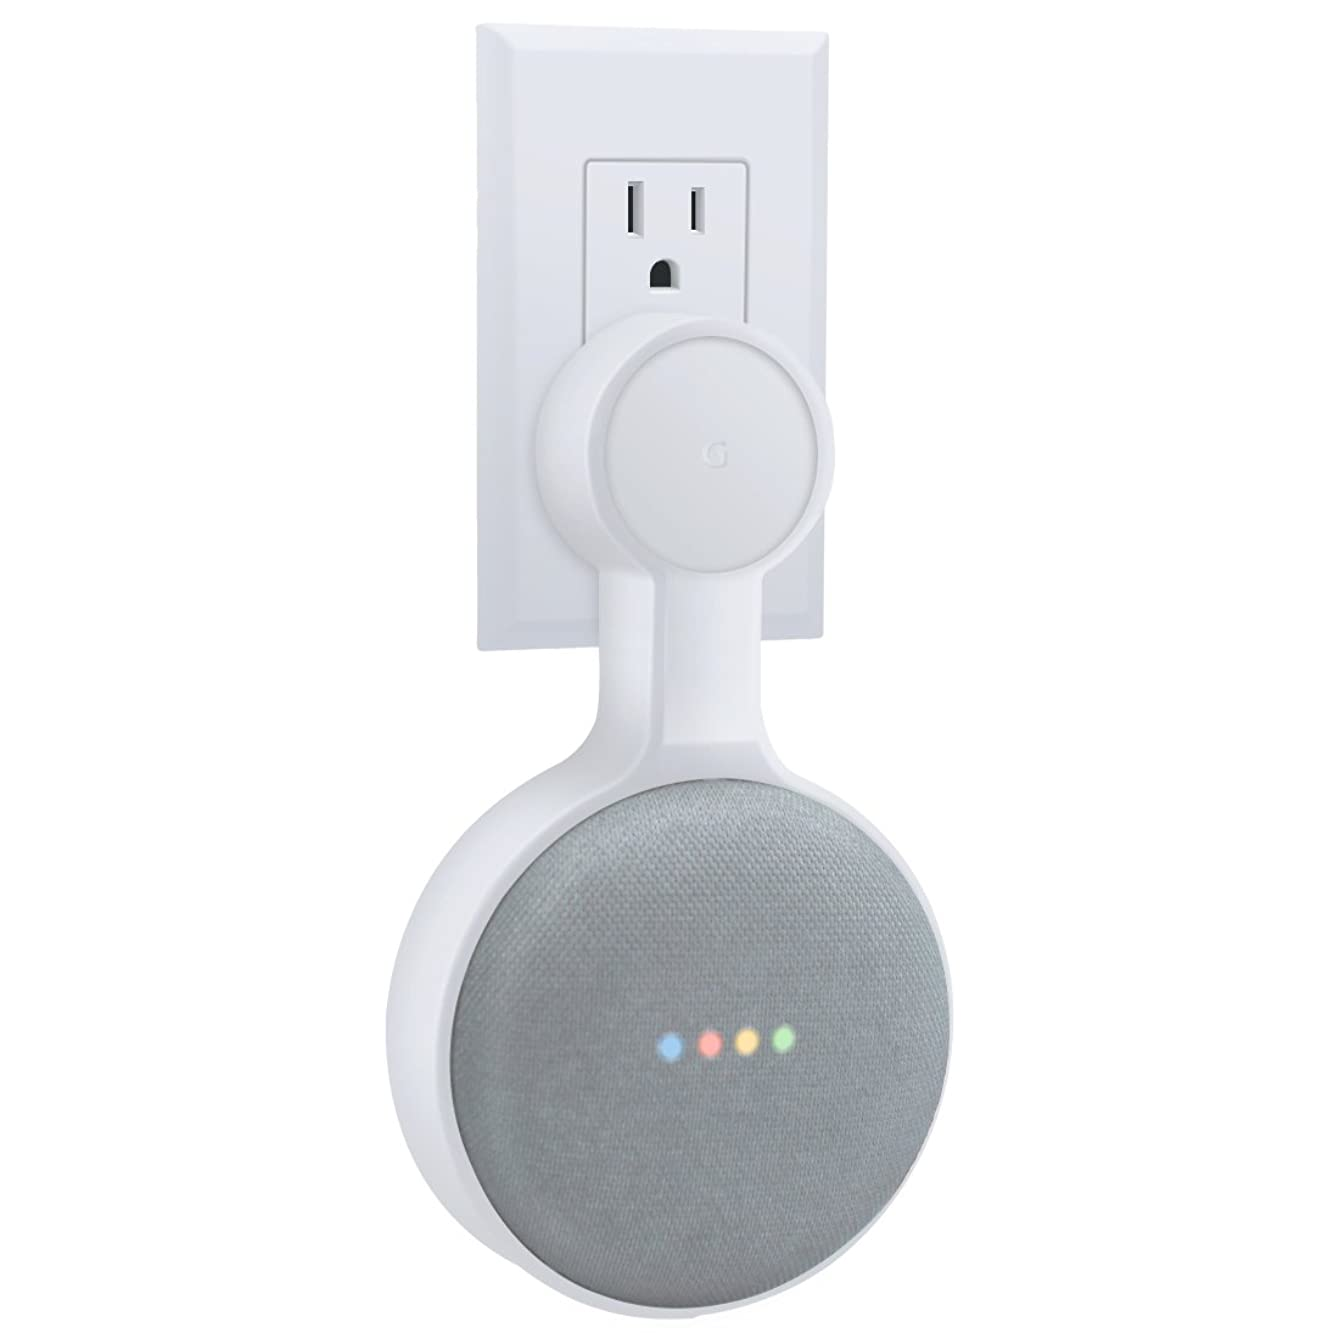 AMORTEK Outlet Wall Mount Holder for Google Home Mini, A Space-Saving Accessories for Google Home Mini Voice Assistant (White) czclpx187624